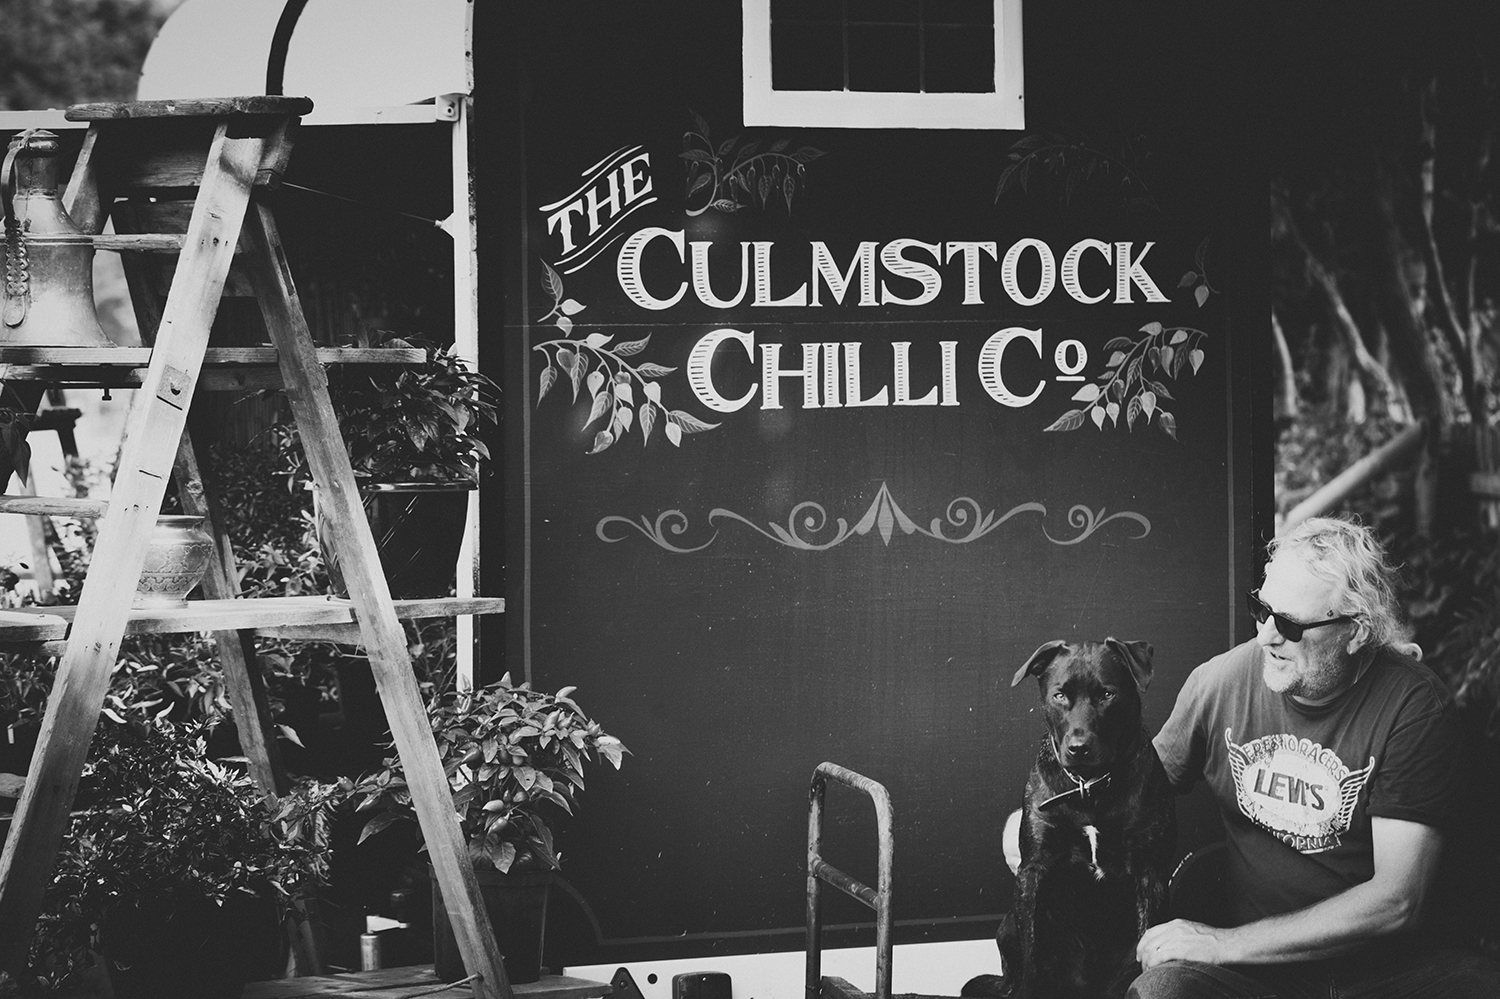 The Culmstock Chilli Co